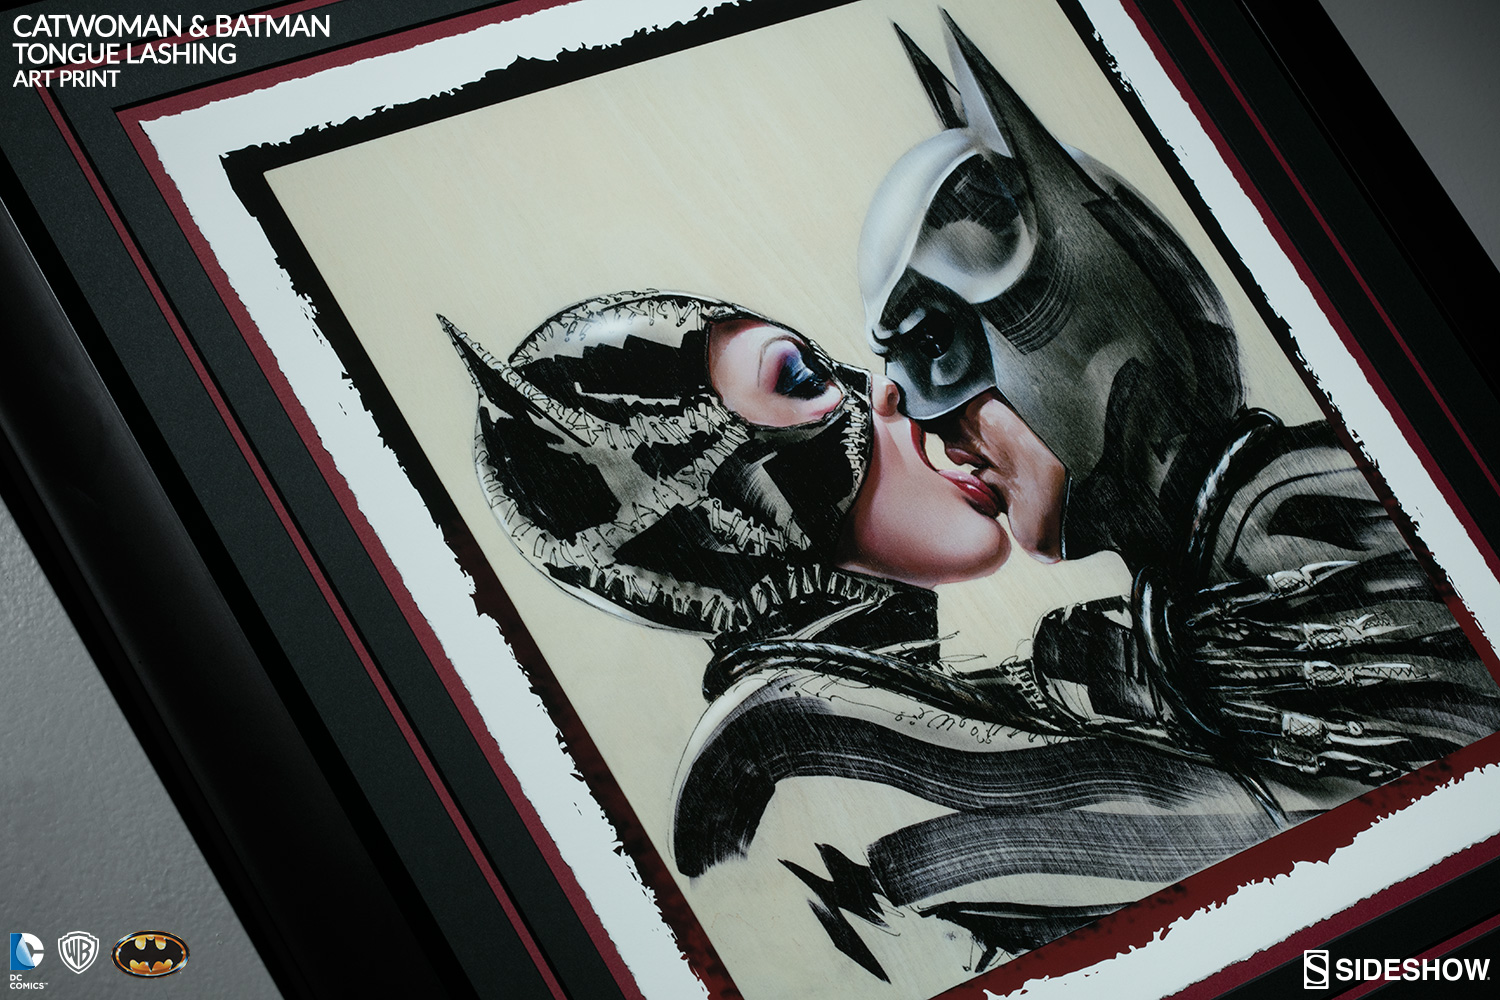 Batman and Catwoman Tongue Lashing Art Print